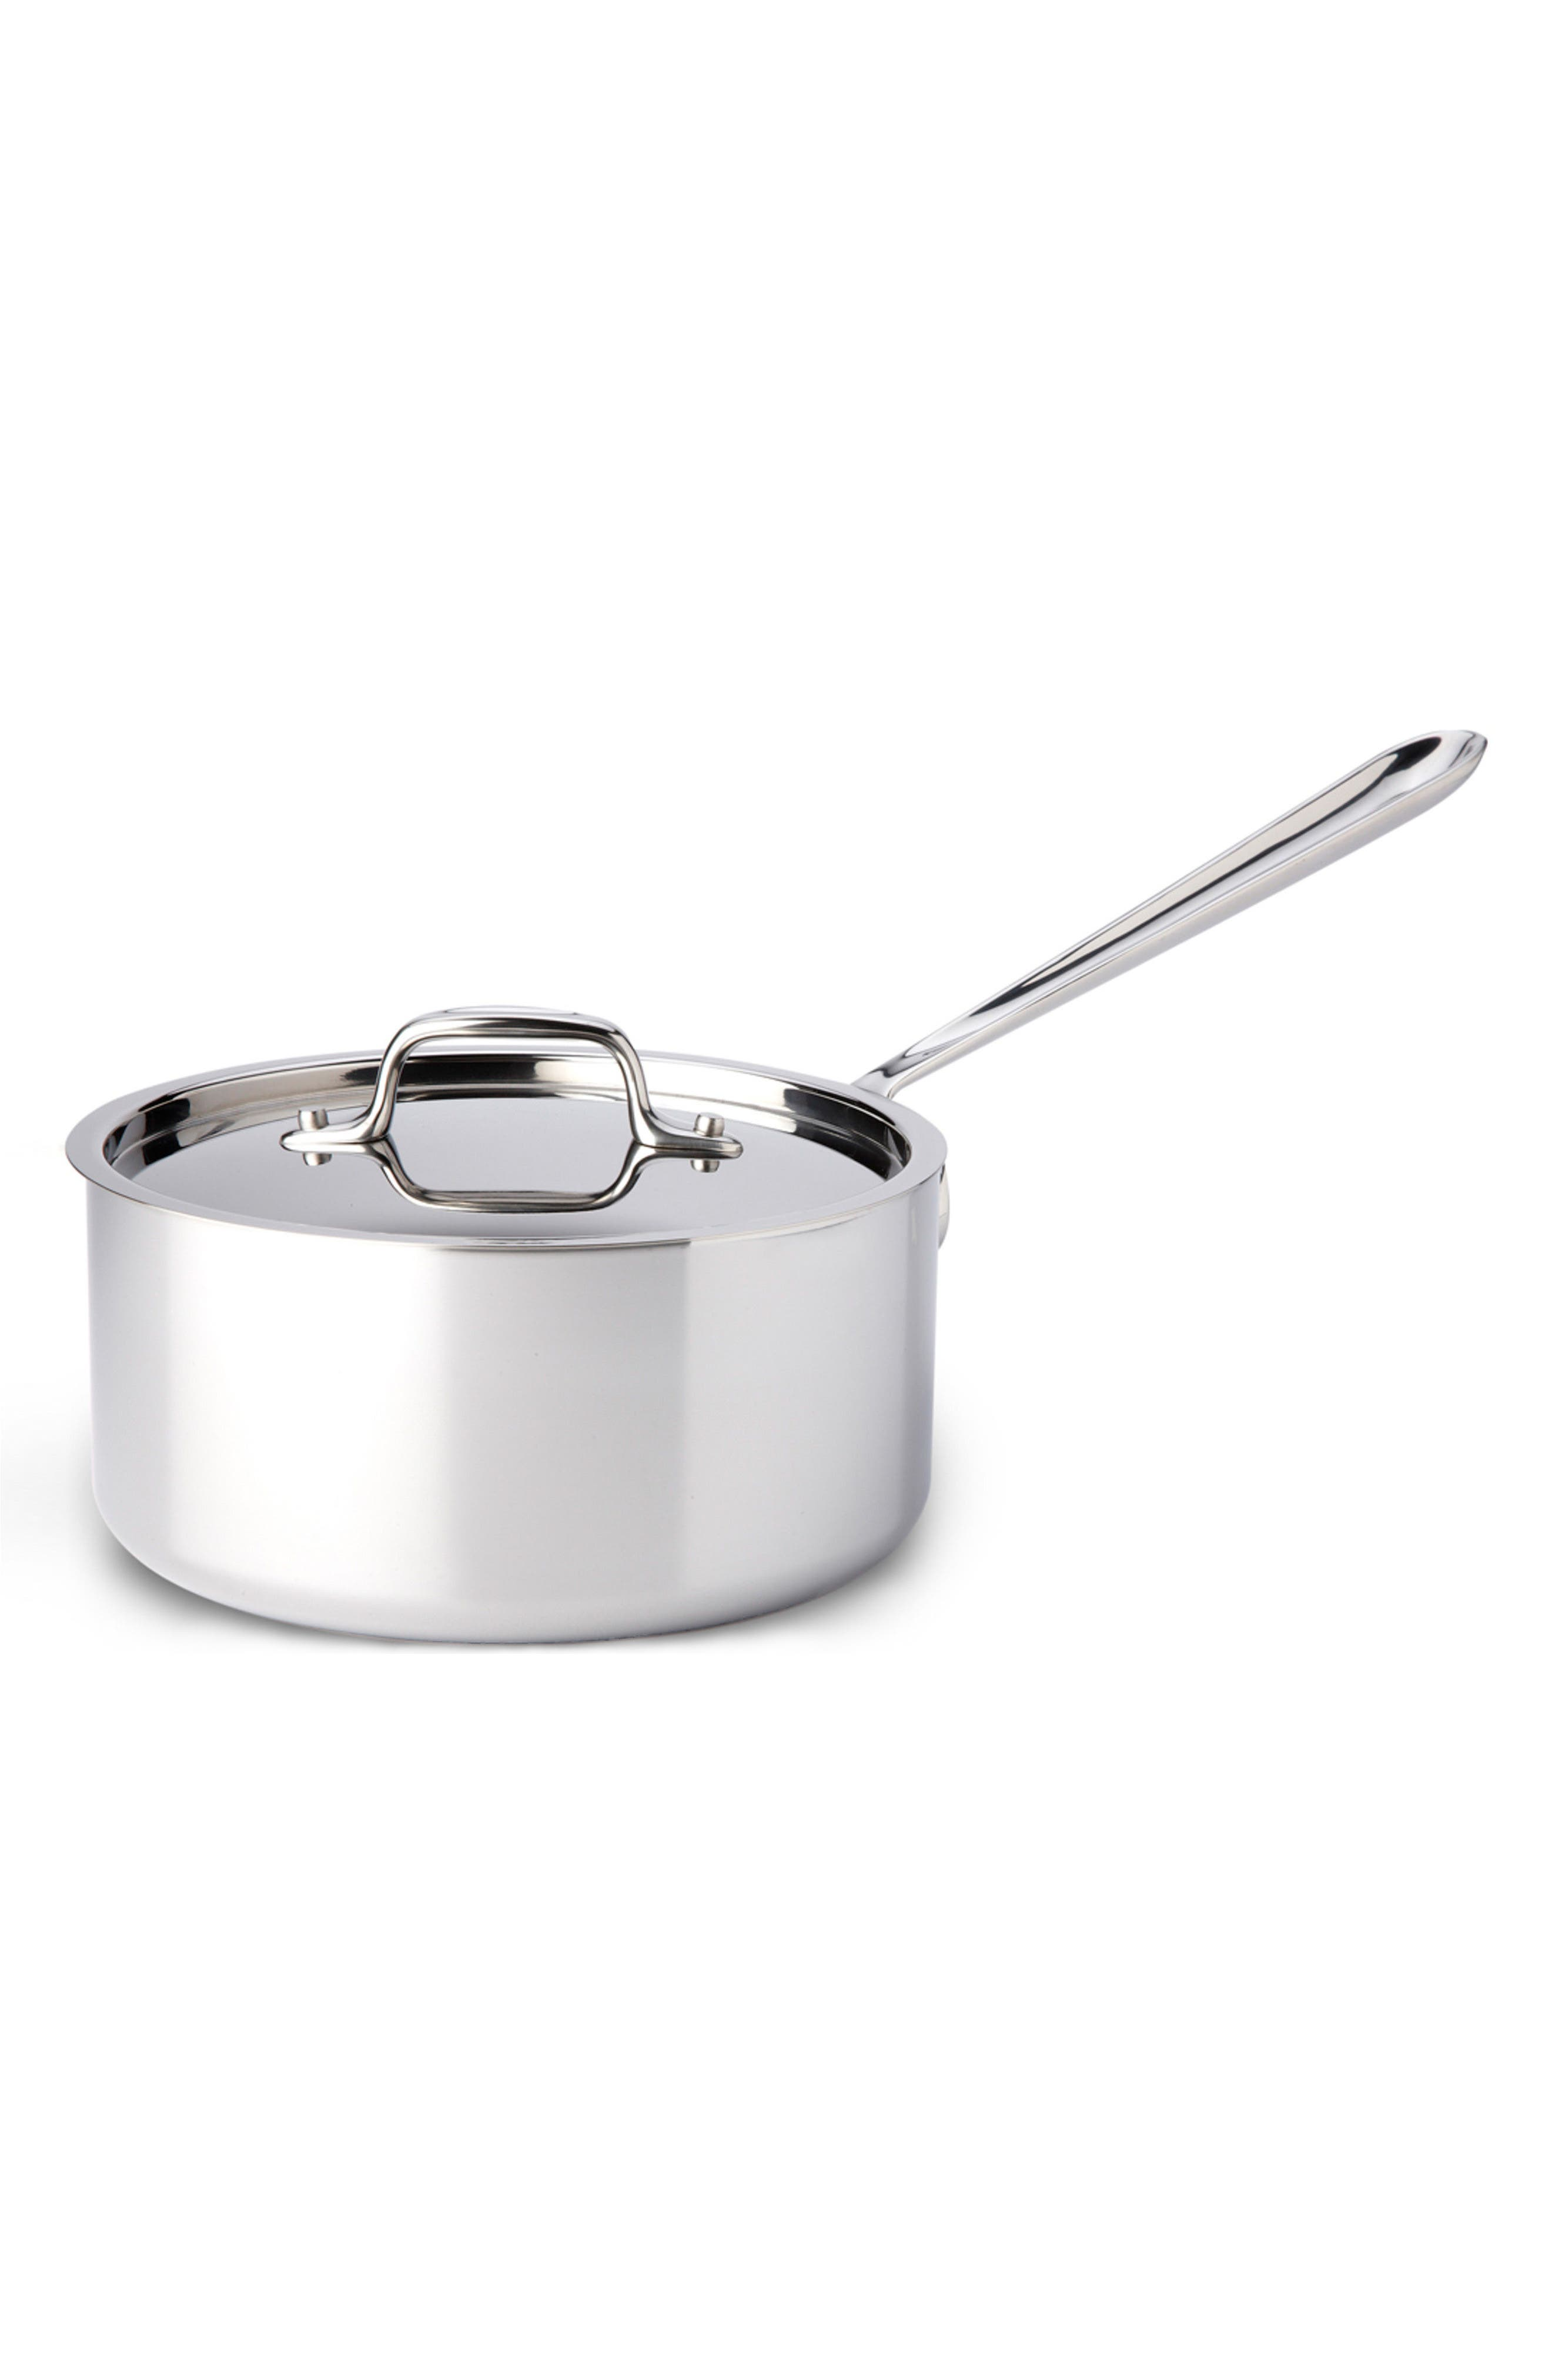 3-Quart Brushed Stainless Steel Sauce Pan,                         Main,                         color, Stainless